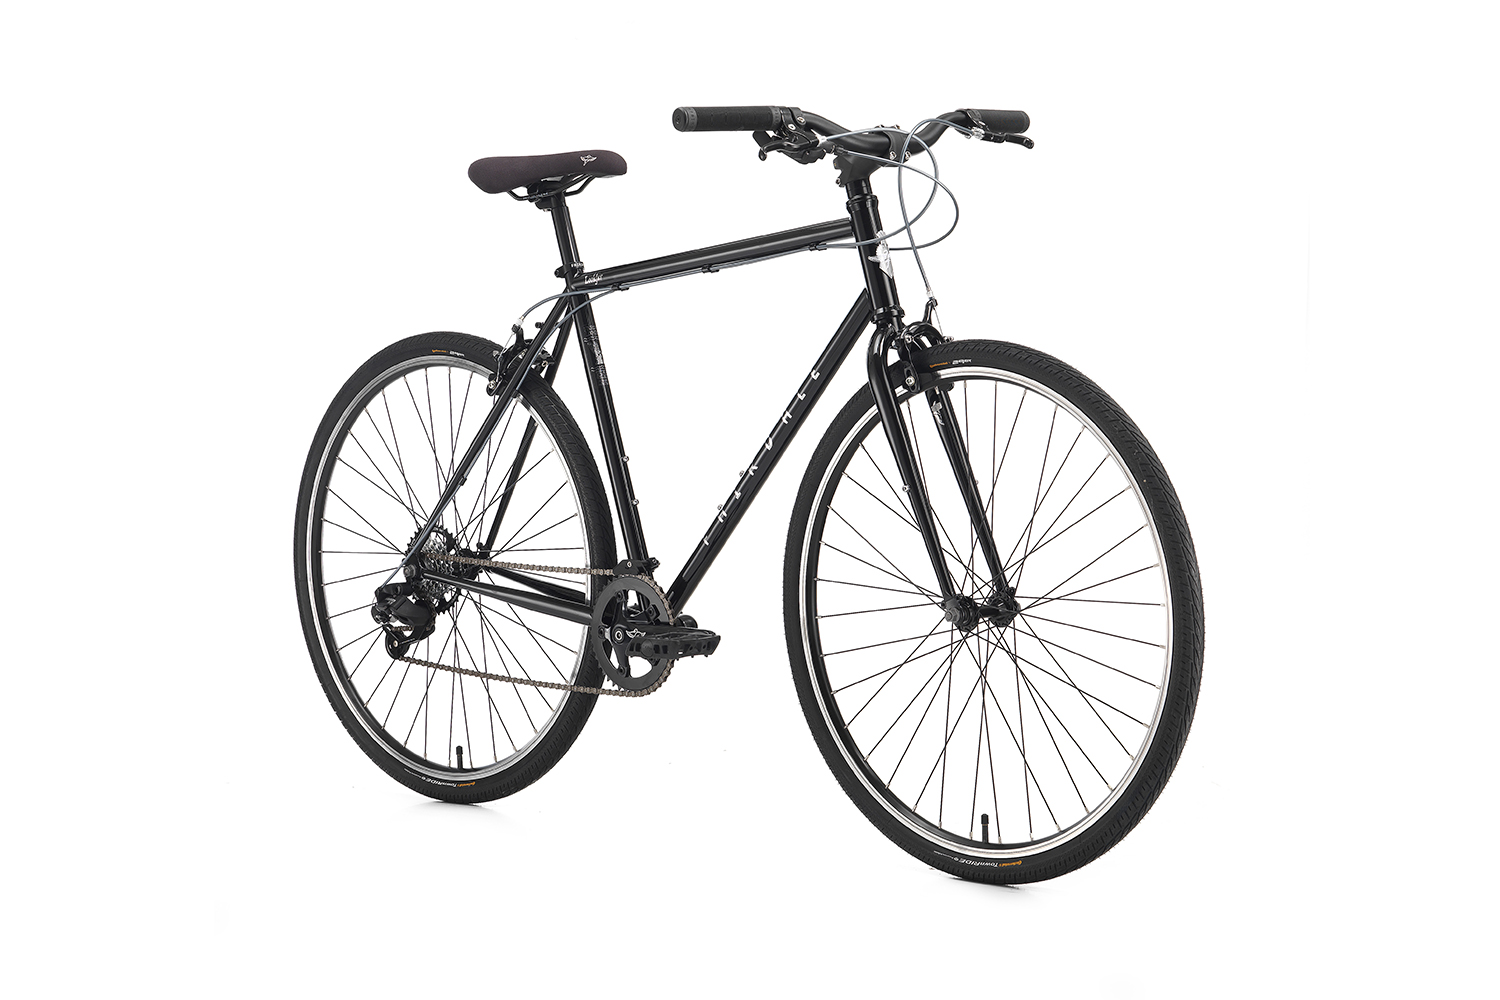 fairdale-bikes-2016-lookfar-black-2